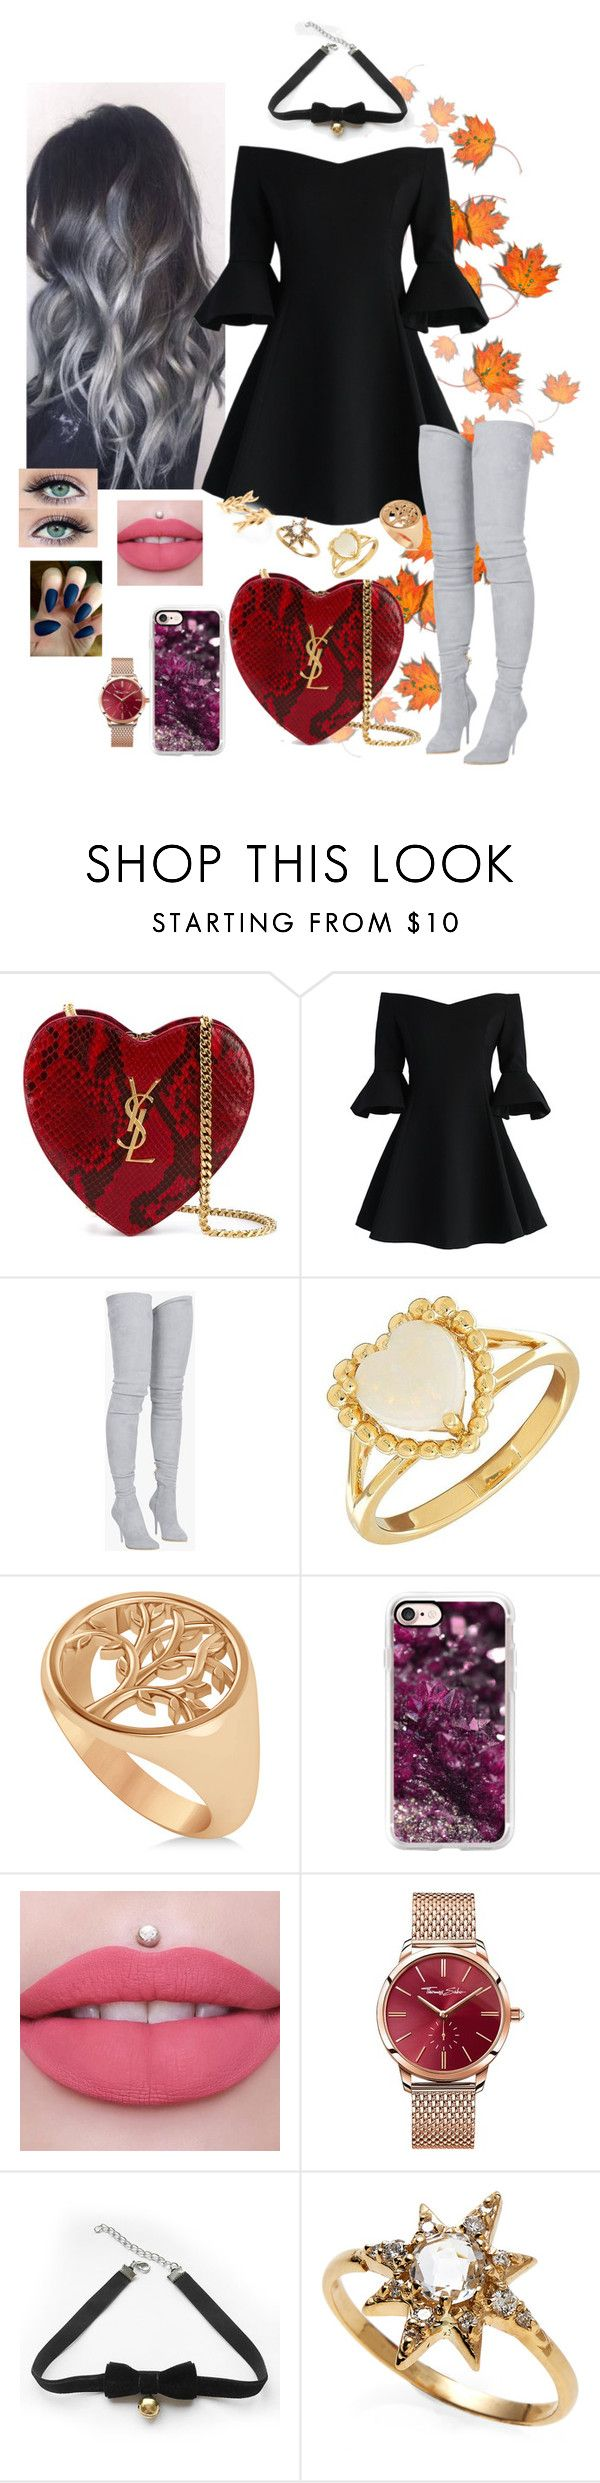 """Sem título #1143"" by anaritaferreira on Polyvore featuring moda, Yves Saint Laurent, Chicwish, Balmain, Lord & Taylor, Allurez, Casetify, Thomas Sabo, COS e Anzie"